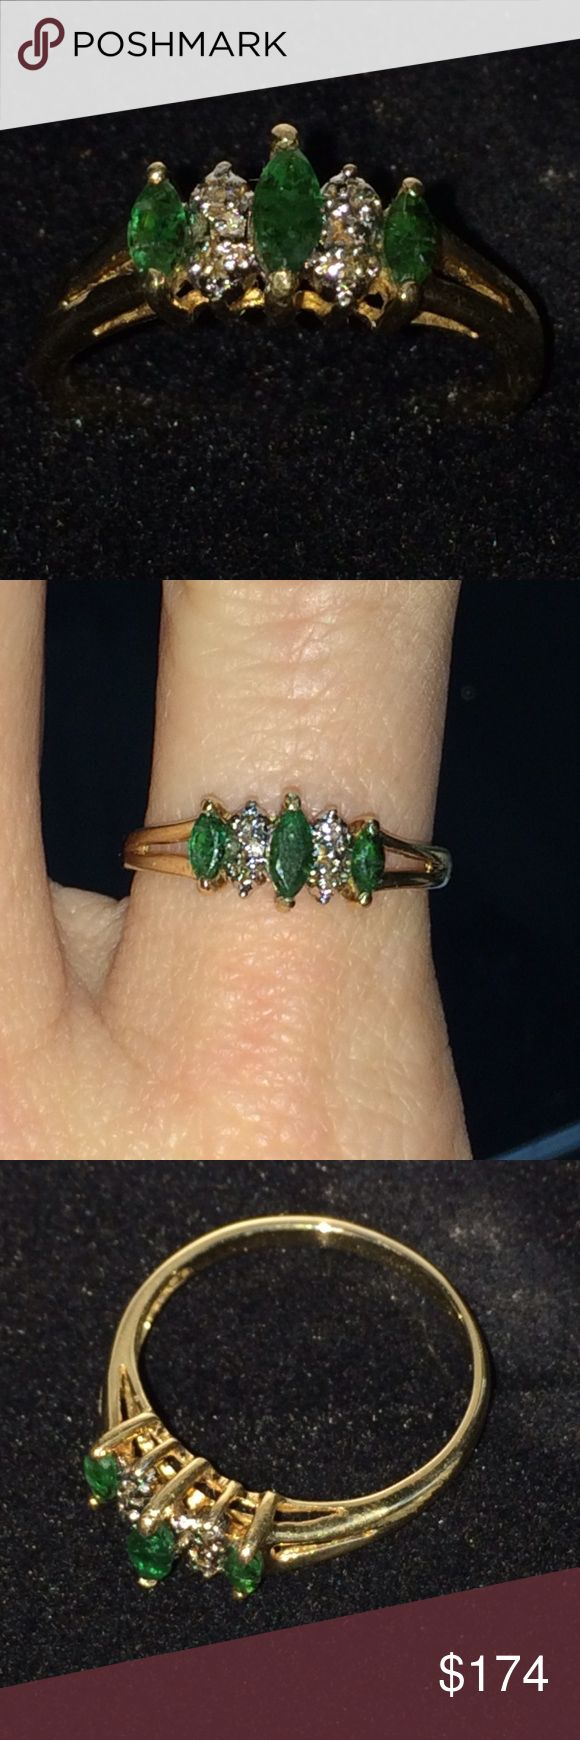 10k gold Emerald & Diamond Ring Gorgeous 10k gold ring with .5ctw emeralds & diamonds. Beautiful Zambian emeralds with three phase inclusions. Approximately size 6.5-6.75. Jewelry Rings